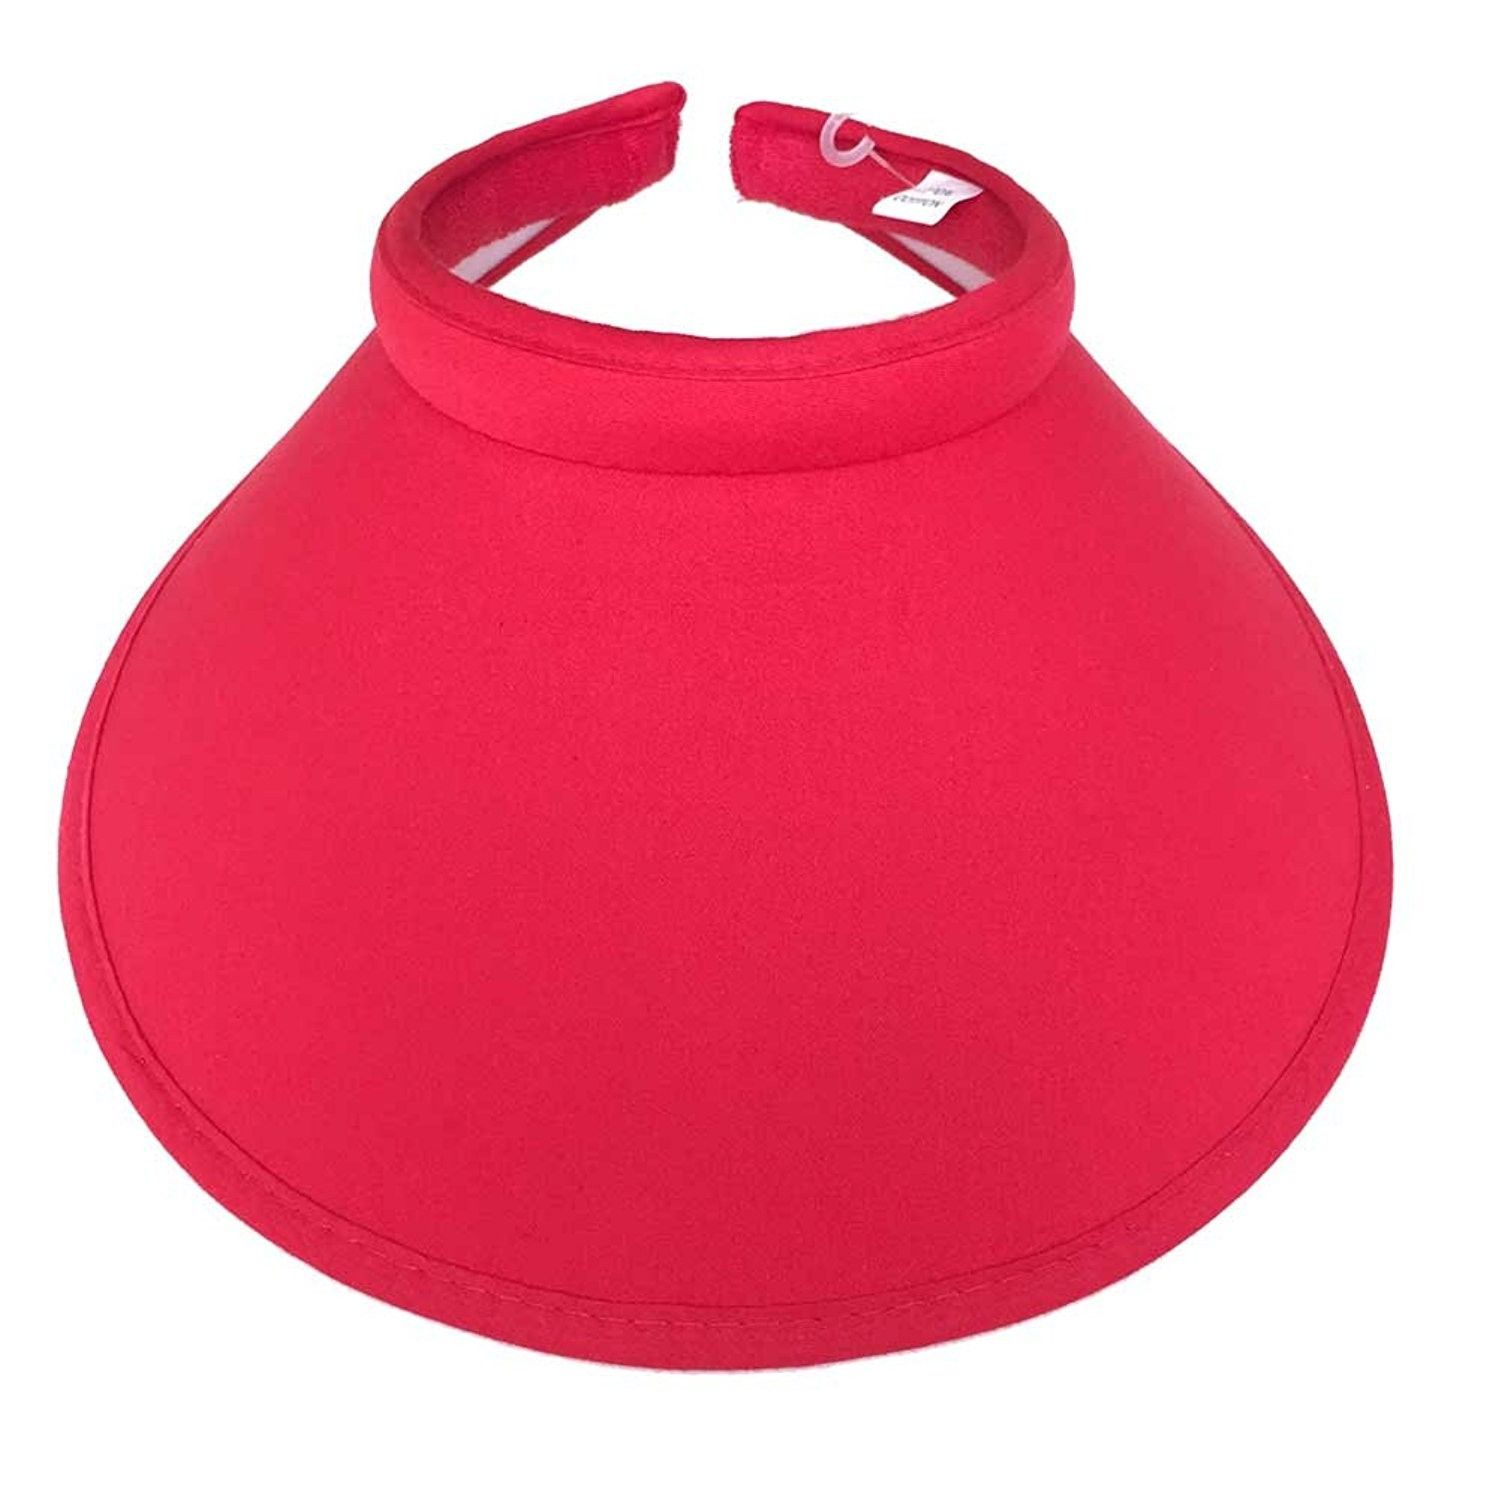 8d0dbf8b266 Big Sun Visor Hat Solid Color Cotton Push On Clip On - Red - C111AX55GGV -  Hats   Caps